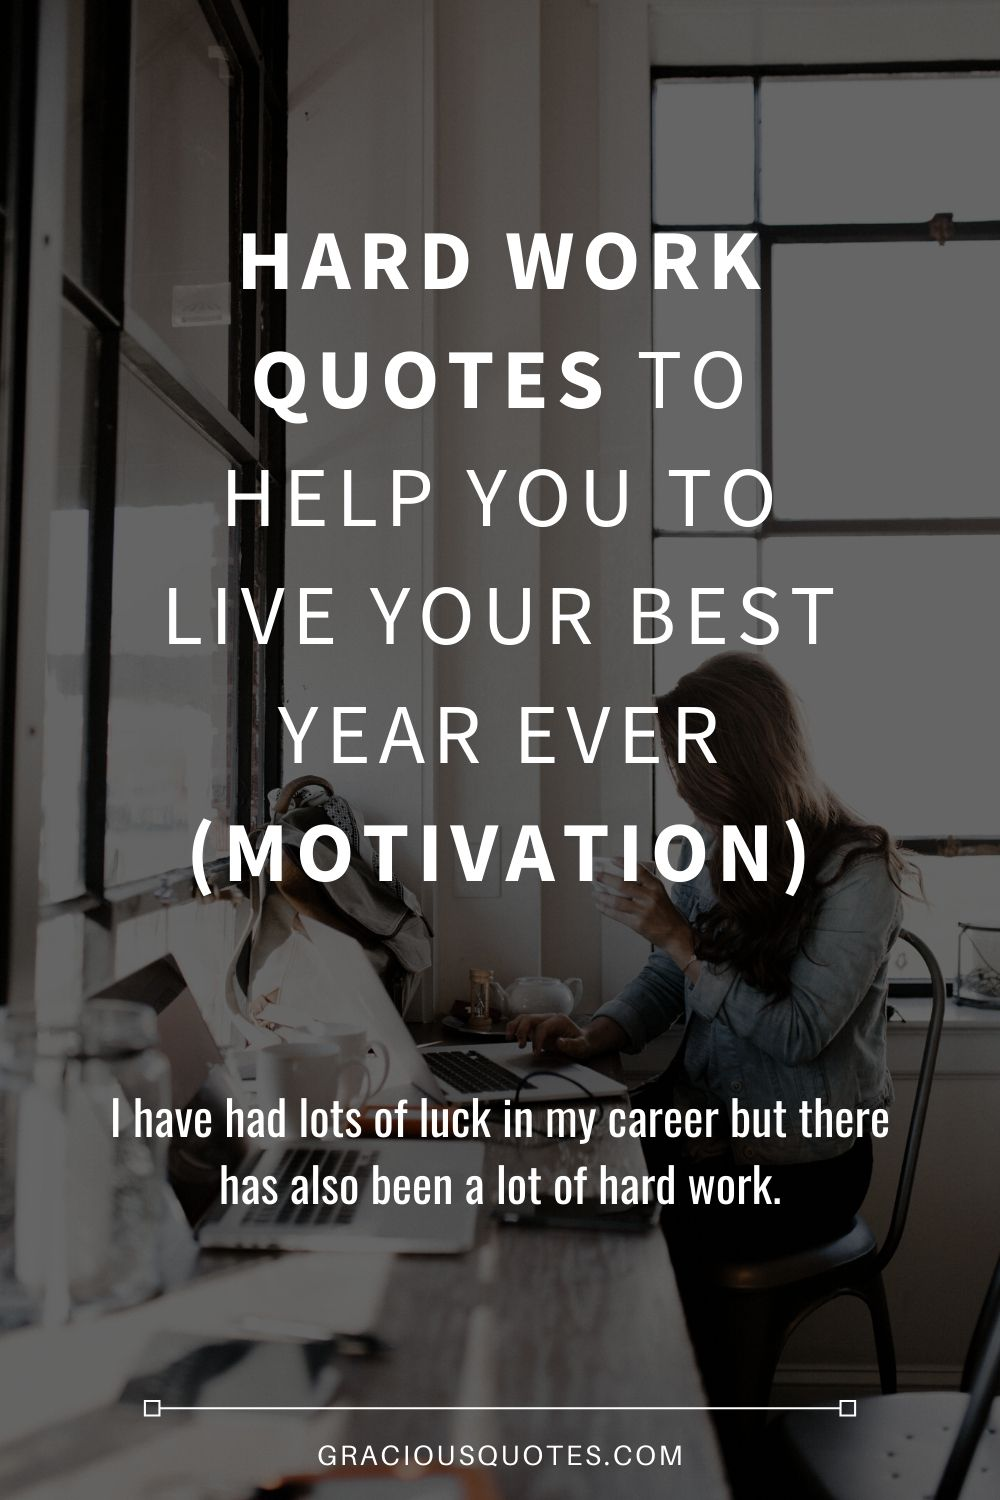 Hard Work Quotes to Help You to Live Your Best Year Ever (MOTIVATION) - Gracious Quotes #hardwork #workinghard #motivation #quotes #graciousquotes